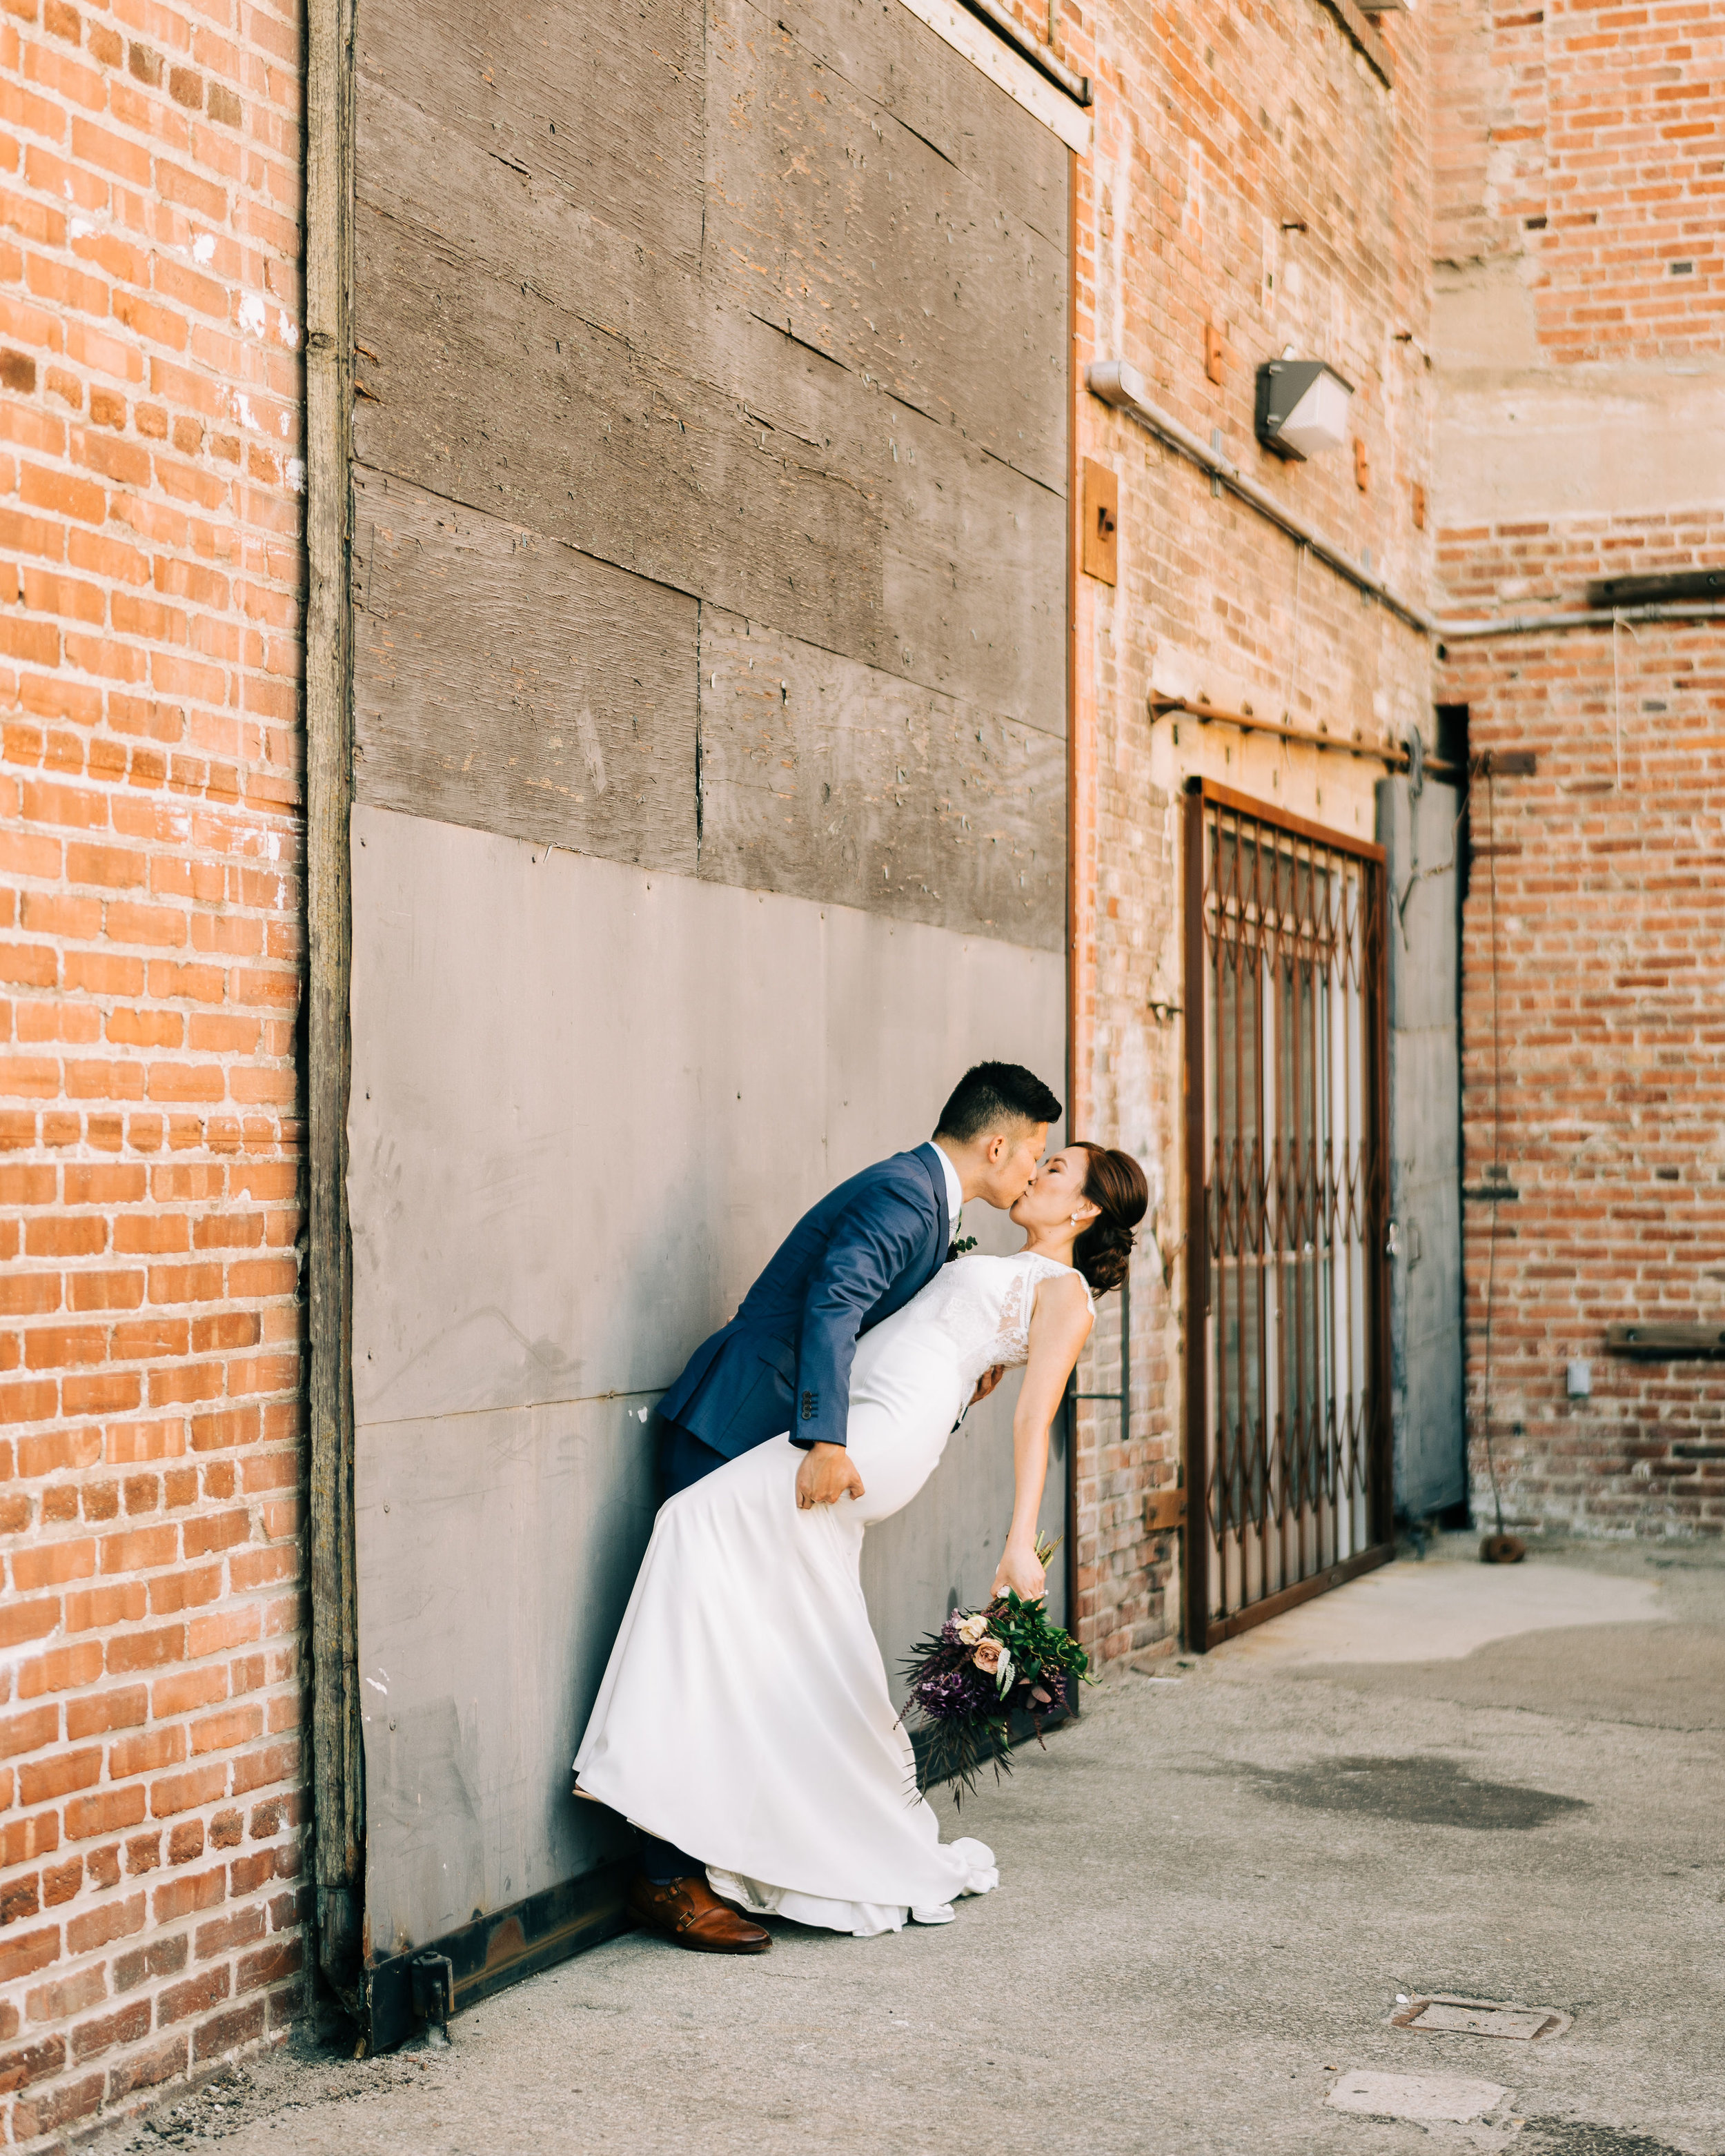 the-alley-at-daily-dose-wedding-brandon-bibbins-photography-0 (2).jpg